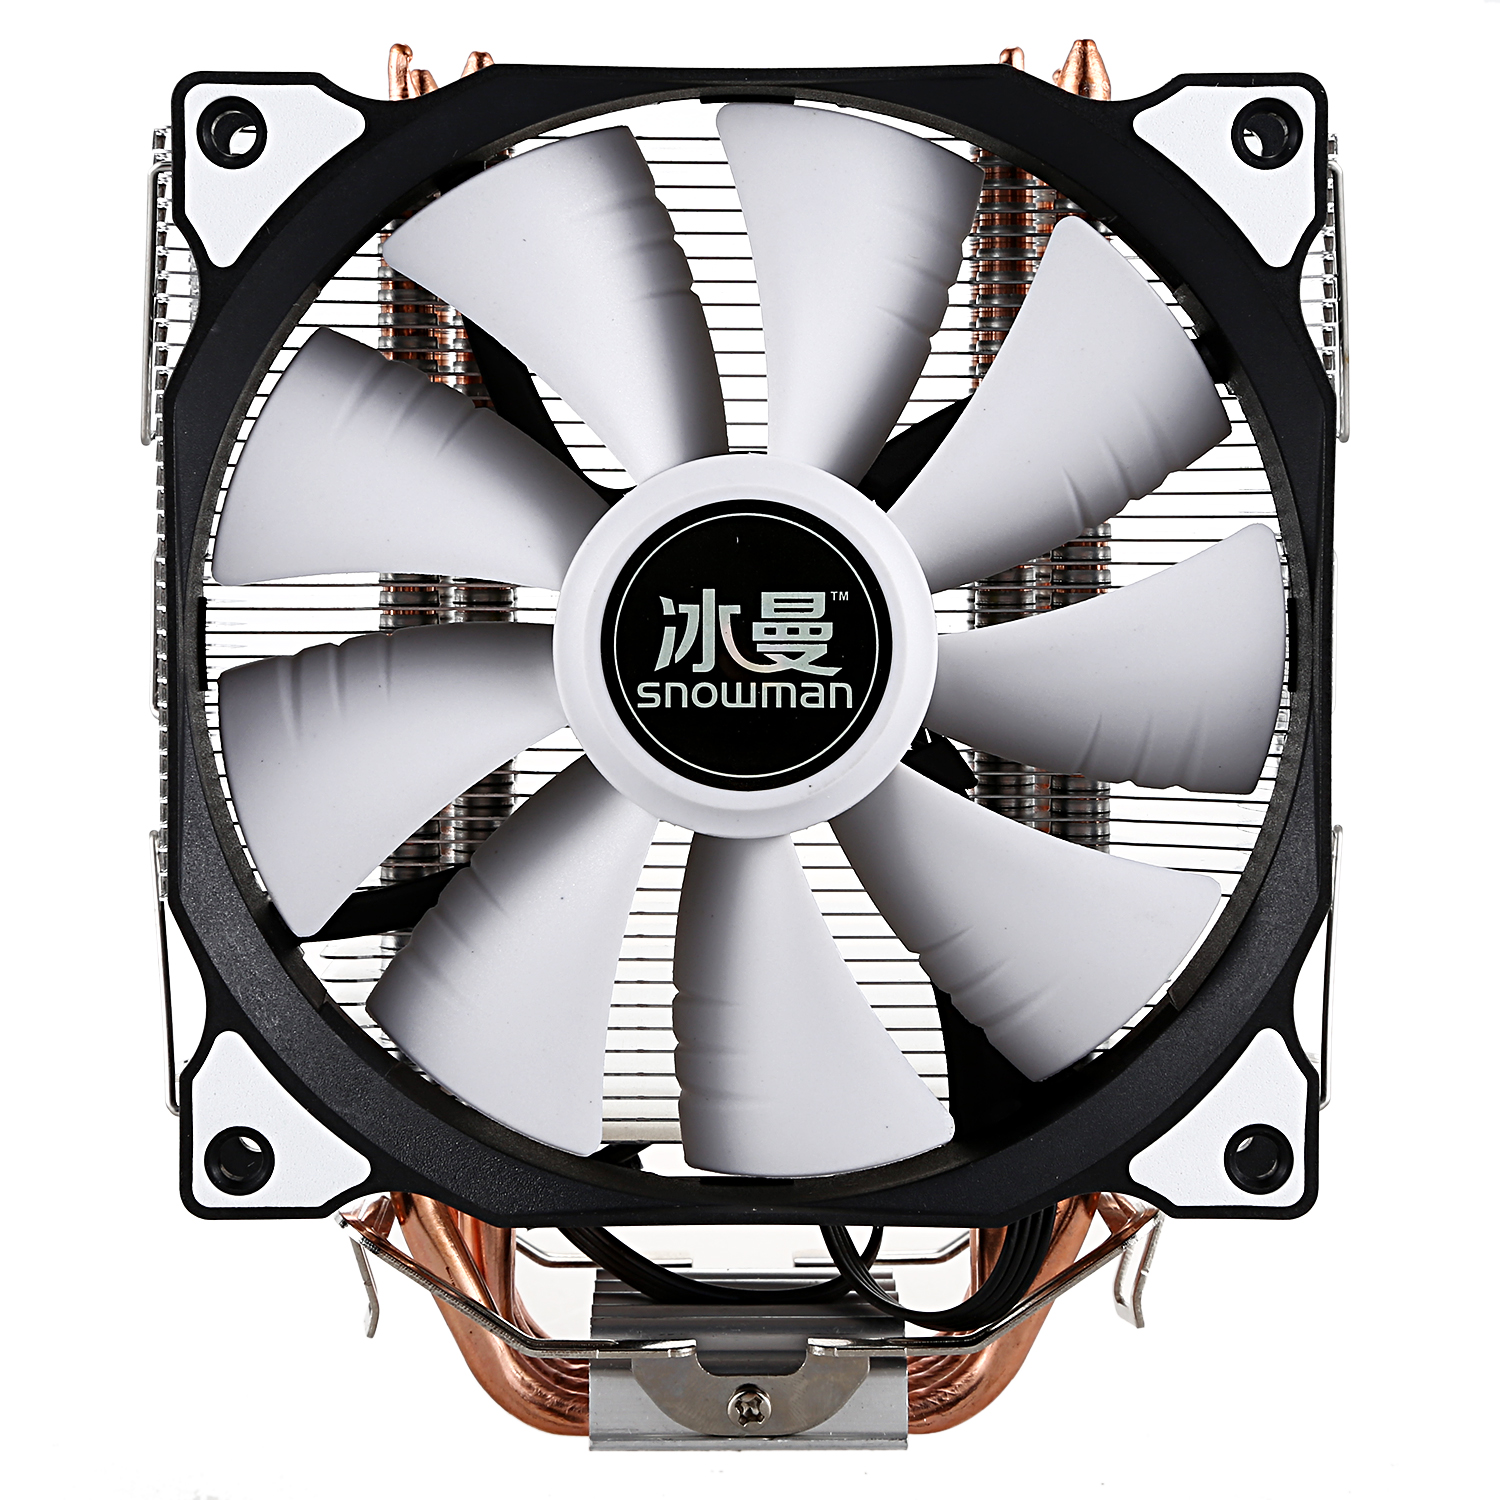 SNOWMAN CPU Cooler Master 5 Direct Contact Heatpipes freeze Tower Cooling System CPU Cooling Fan with PWM Fans-in Fans & Cooling from Computer & Office